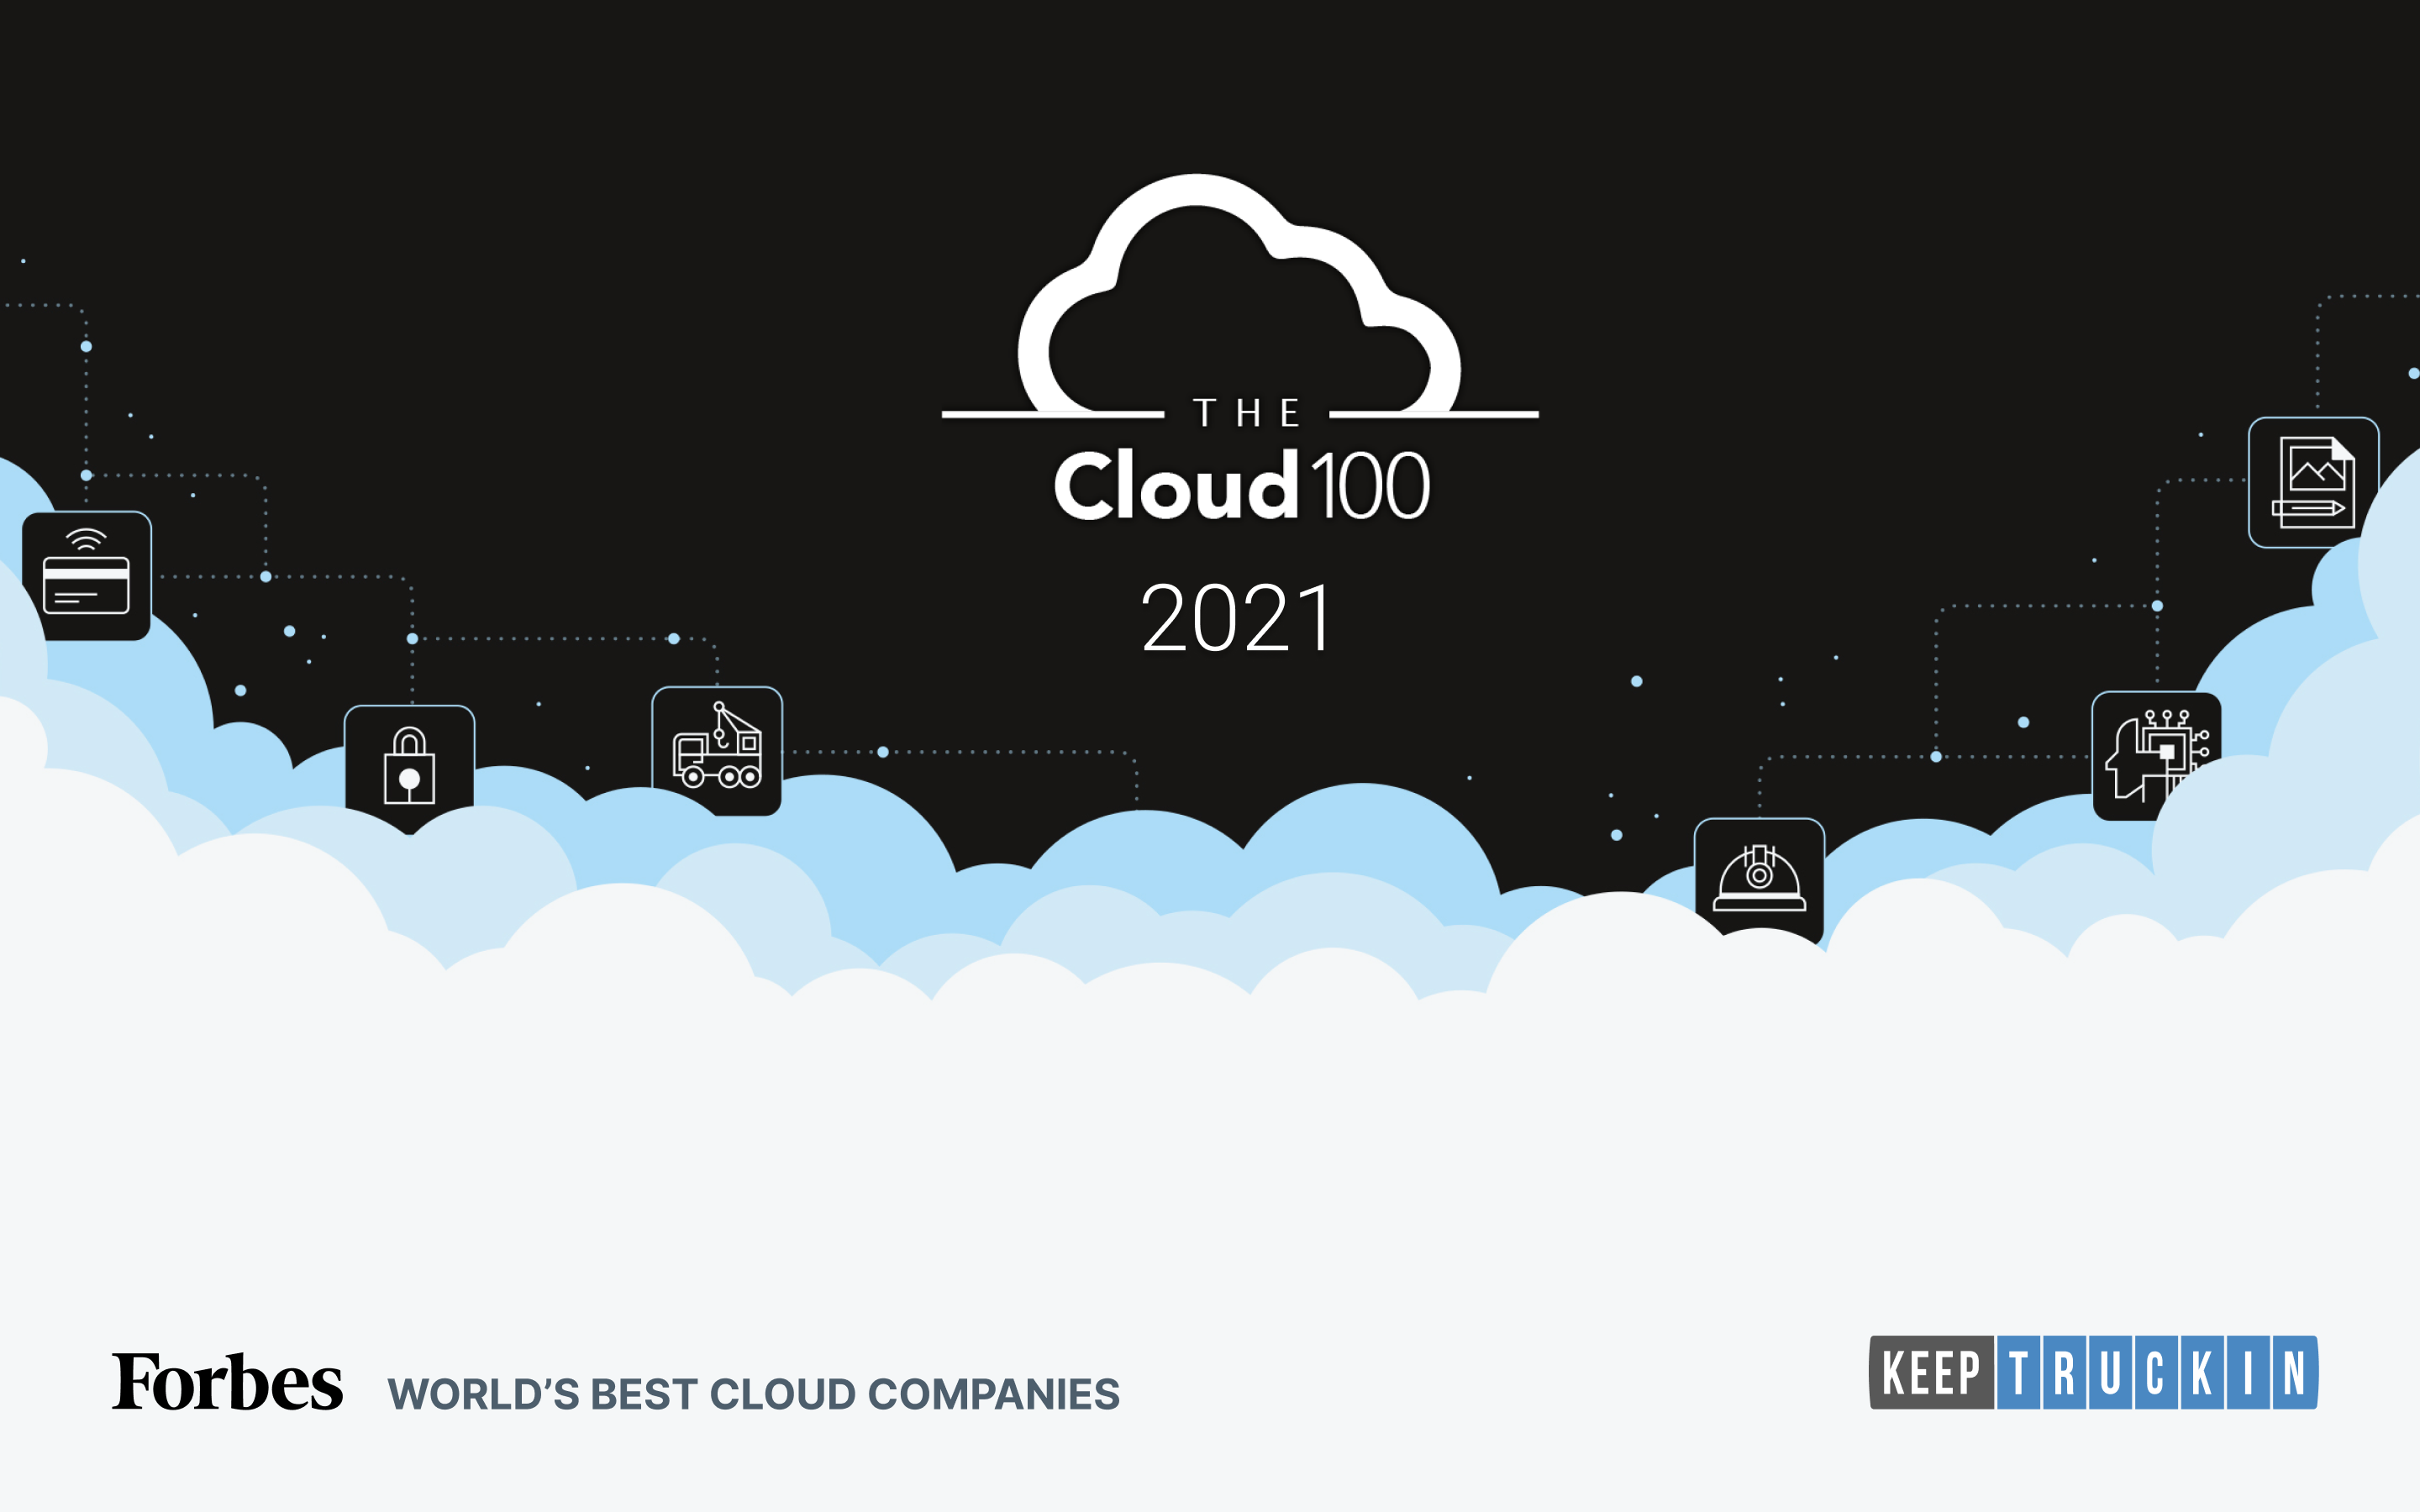 KeepTruckin named a Forbes 'Cloud 100' company for fourth year running